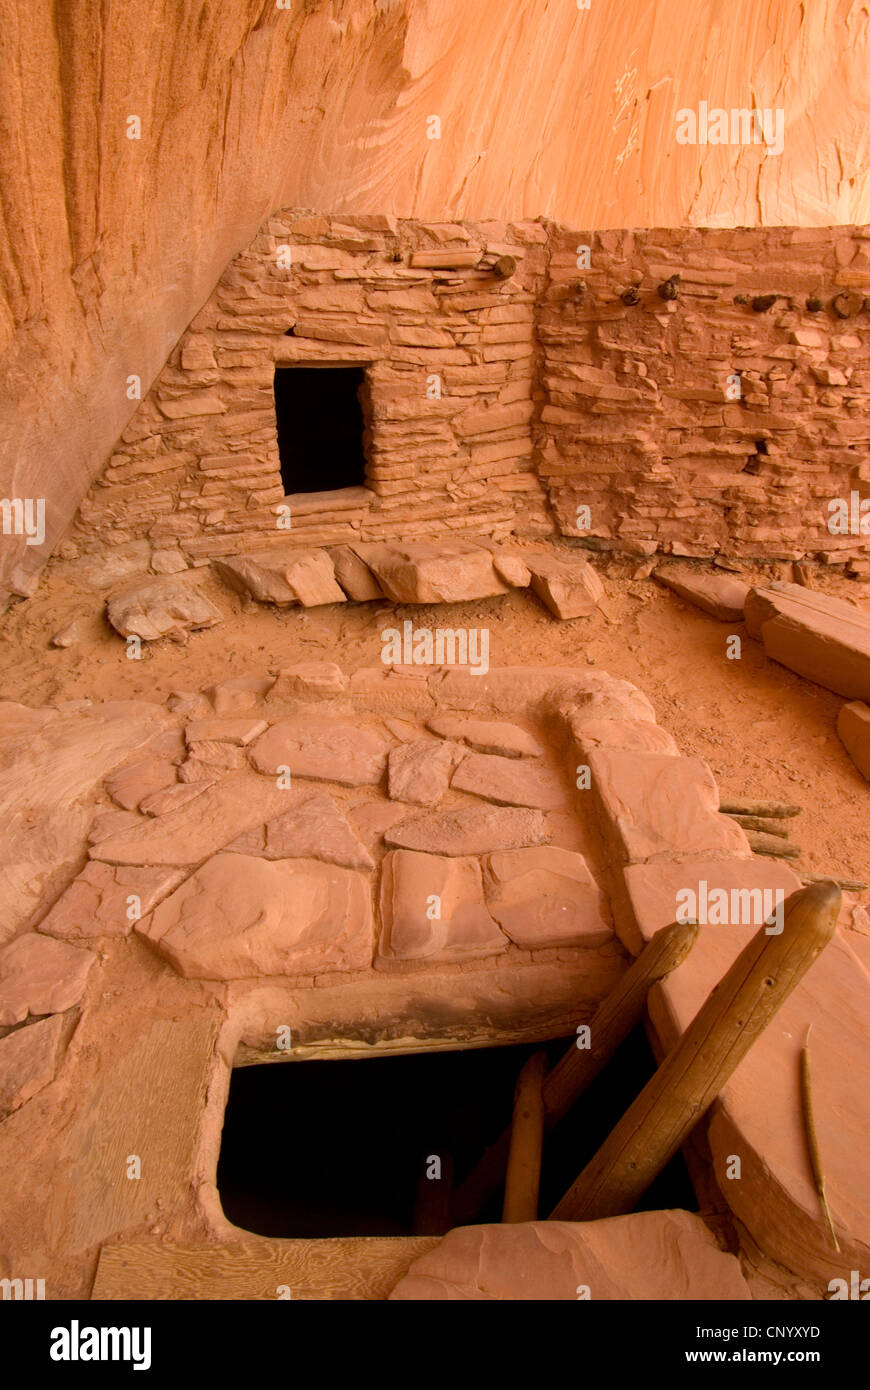 Defiance House Ruin, Glen Canyon National Recreation Area, Lake Powell, Utah - Stock Image